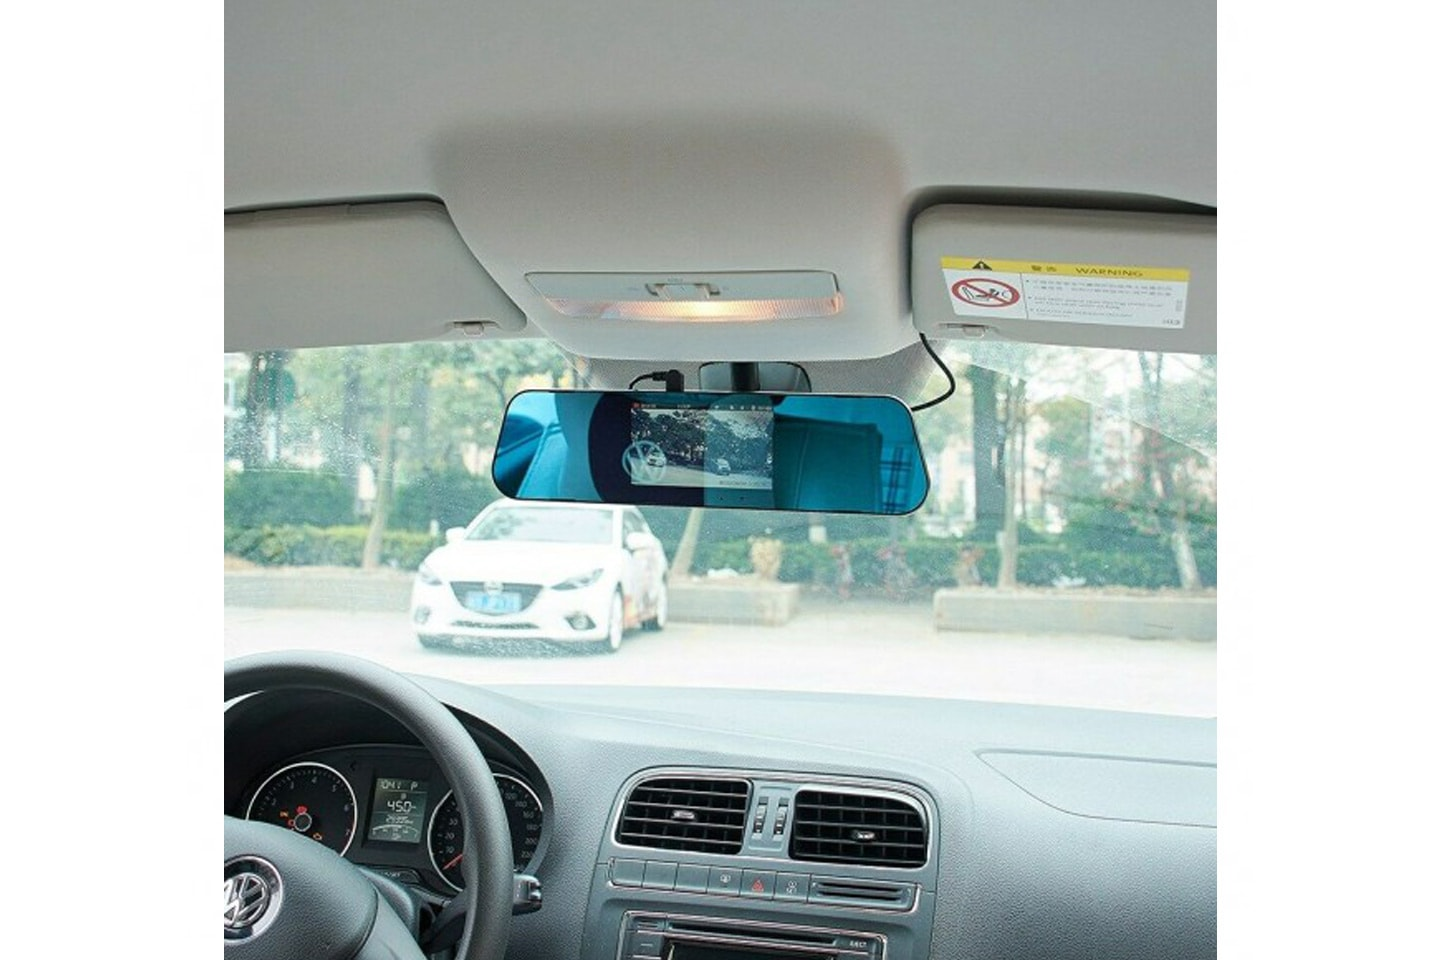 Clip-on dashcam